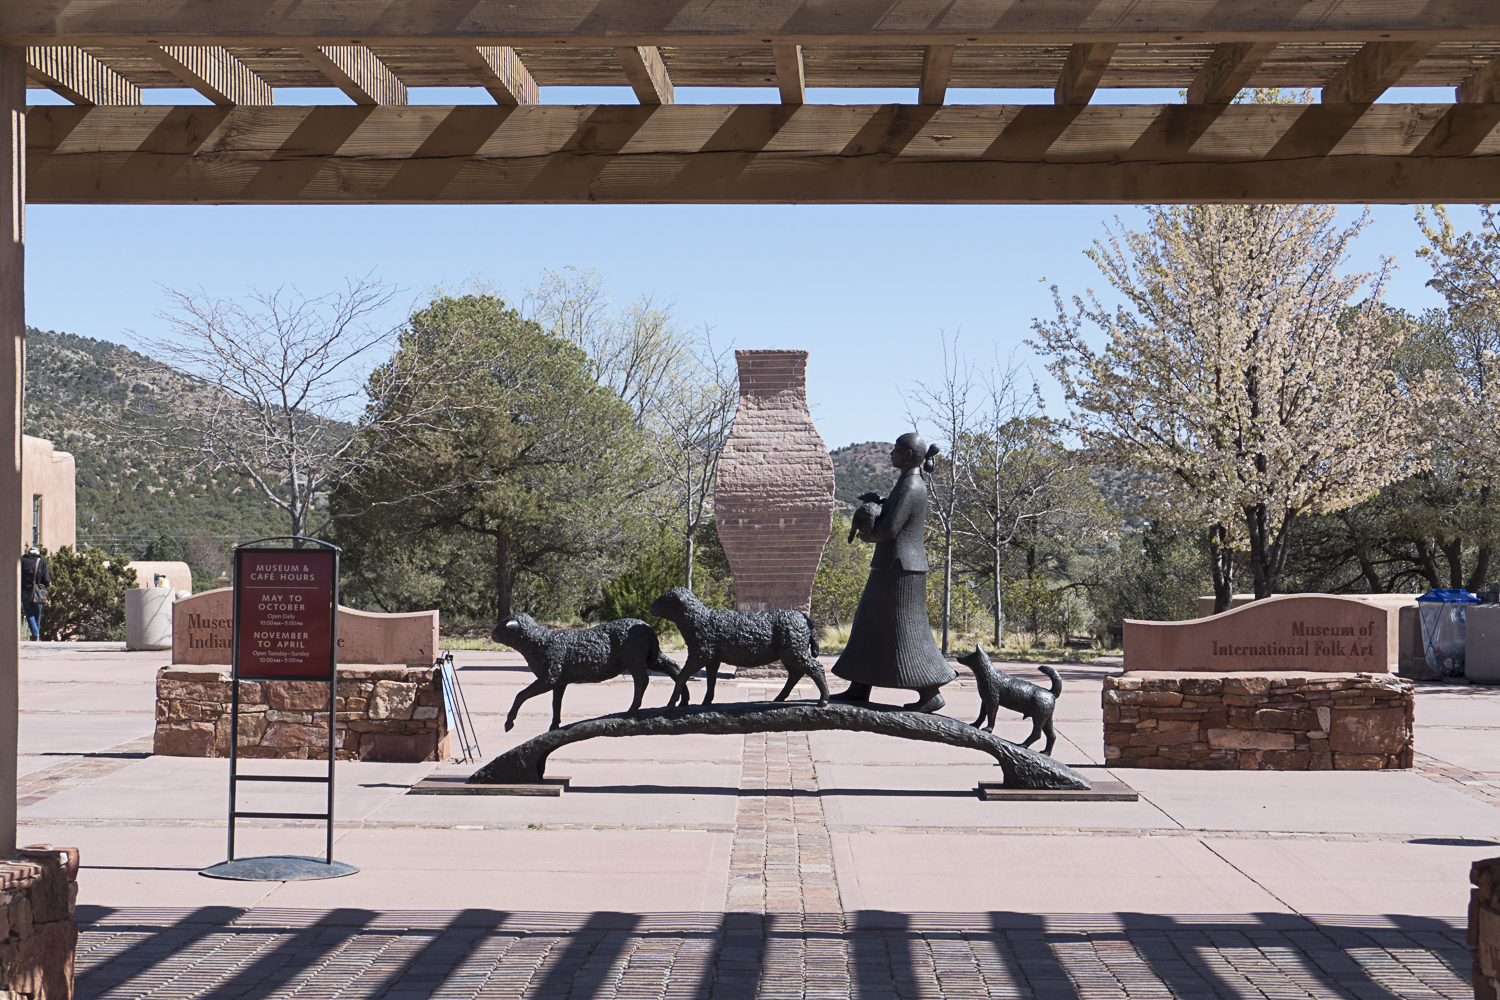 Museum of International Folk Art in Santa Fe